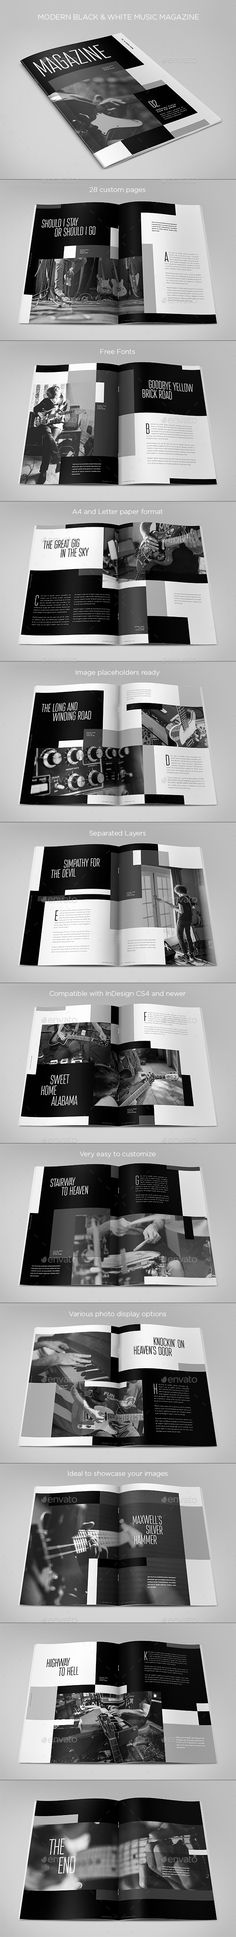 Modern Black & White Music Magazine by AbraDesign MODERN BLACK & WHITE MUSIC MAGAZINEClean, modern and simple design ideal for any purposes. Very easy to adapt and customize. DETA